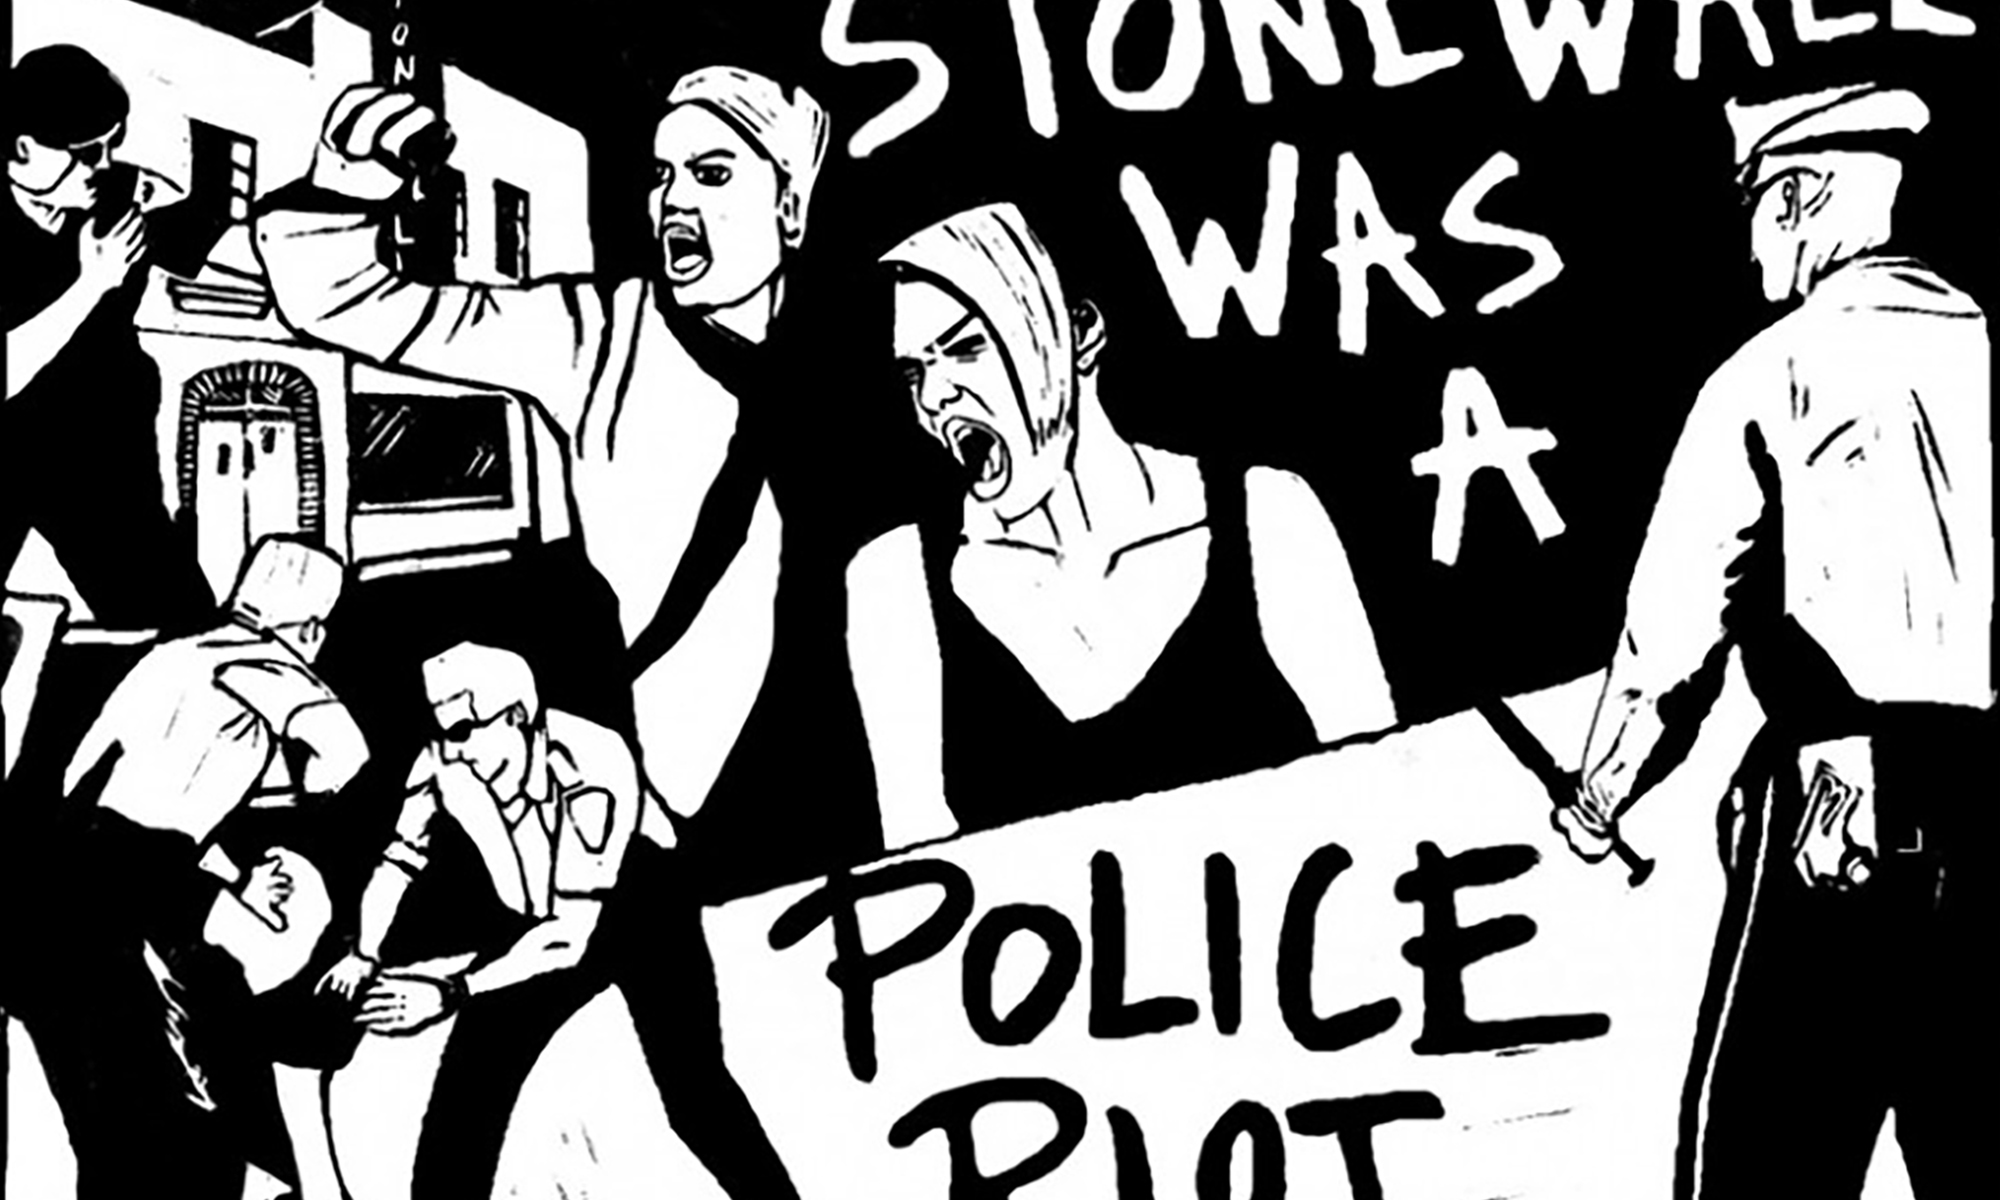 Stonewall was a police riot! Queer and Trans people say NO NEW JAIL!